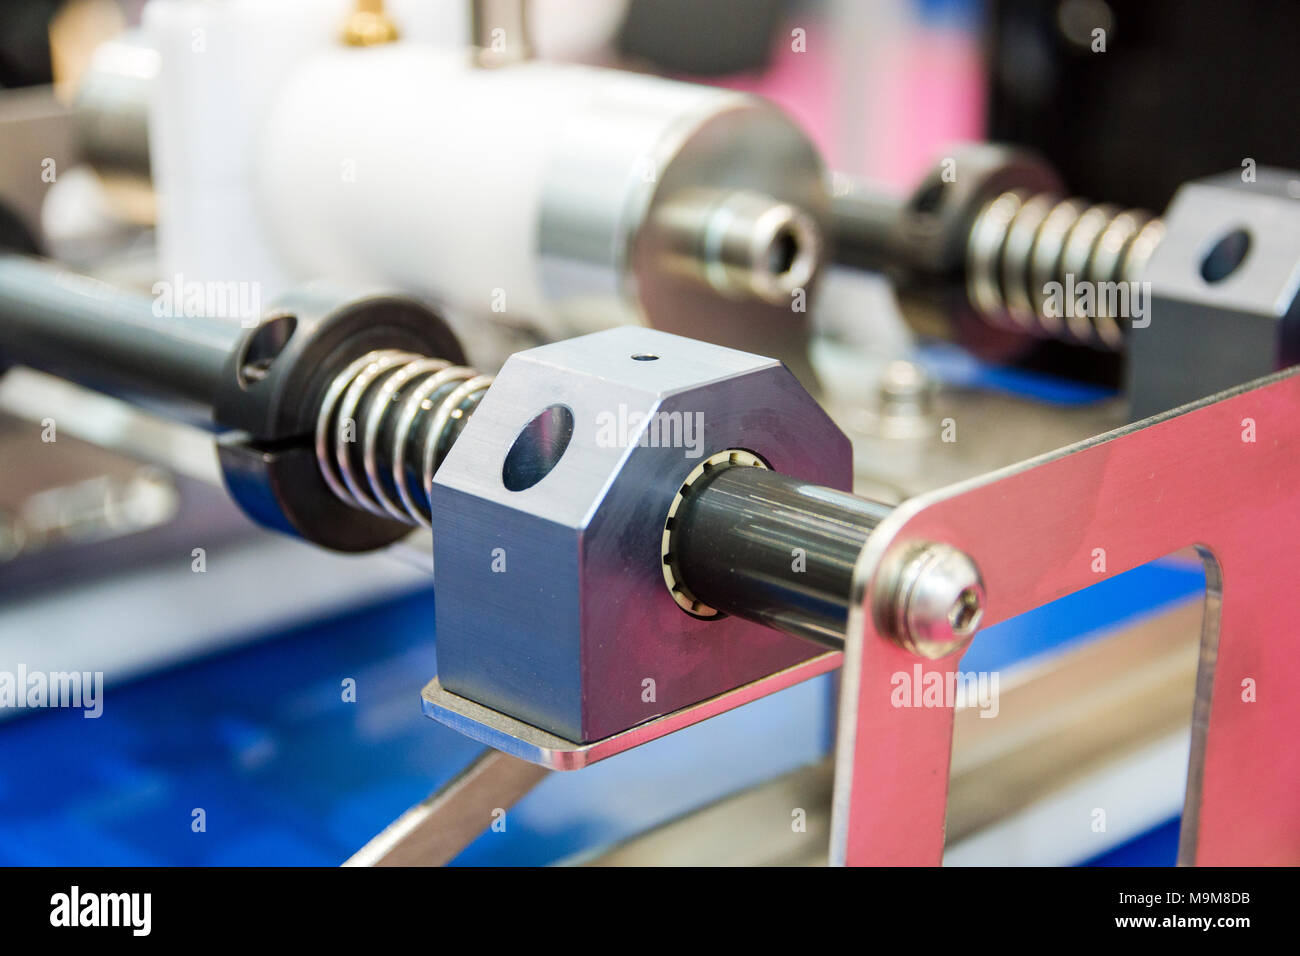 detail closeup of equipment for bakery products. - Stock Image